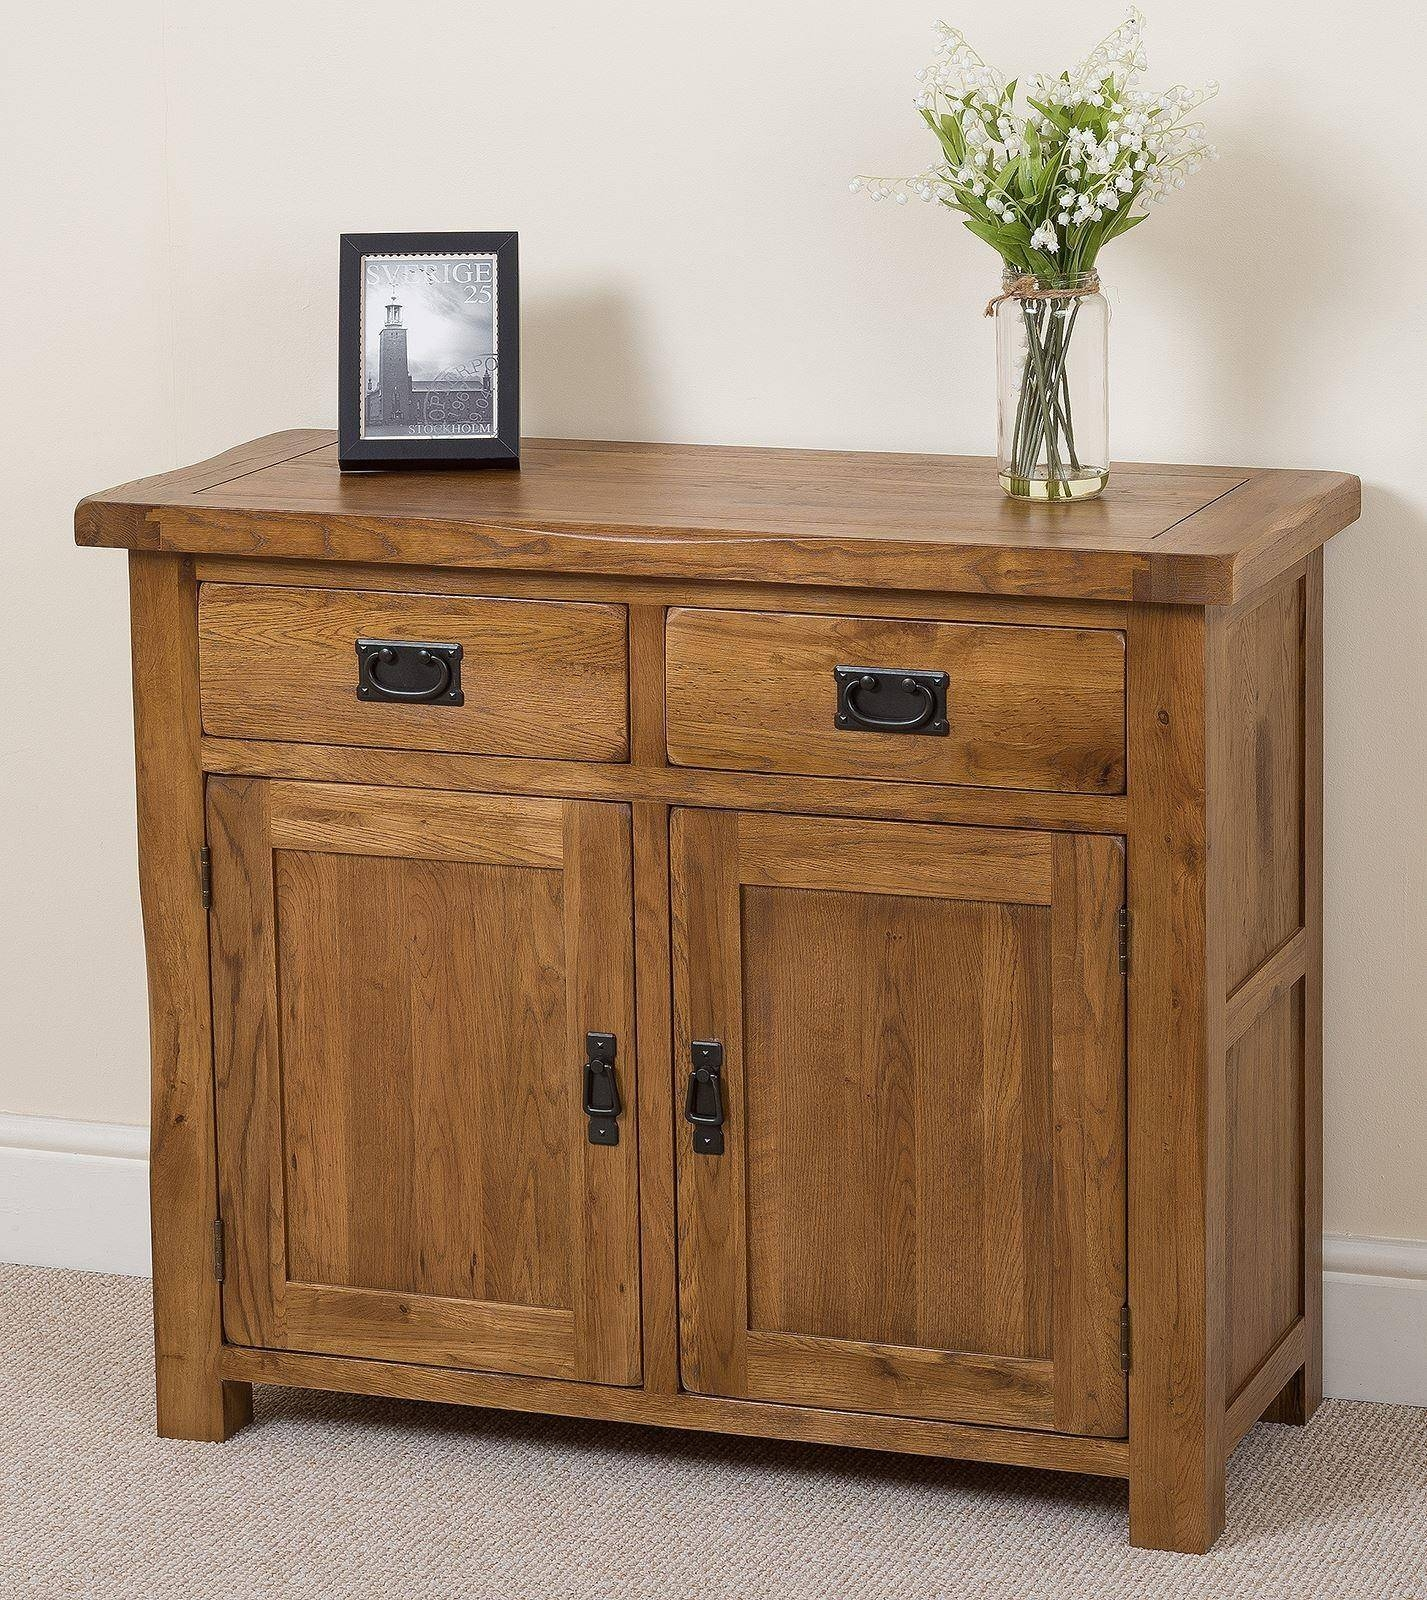 Cotswold Rustic Small Oak Sideboard | Free Uk Delivery For Most Current Small Oak Sideboards (#6 of 15)